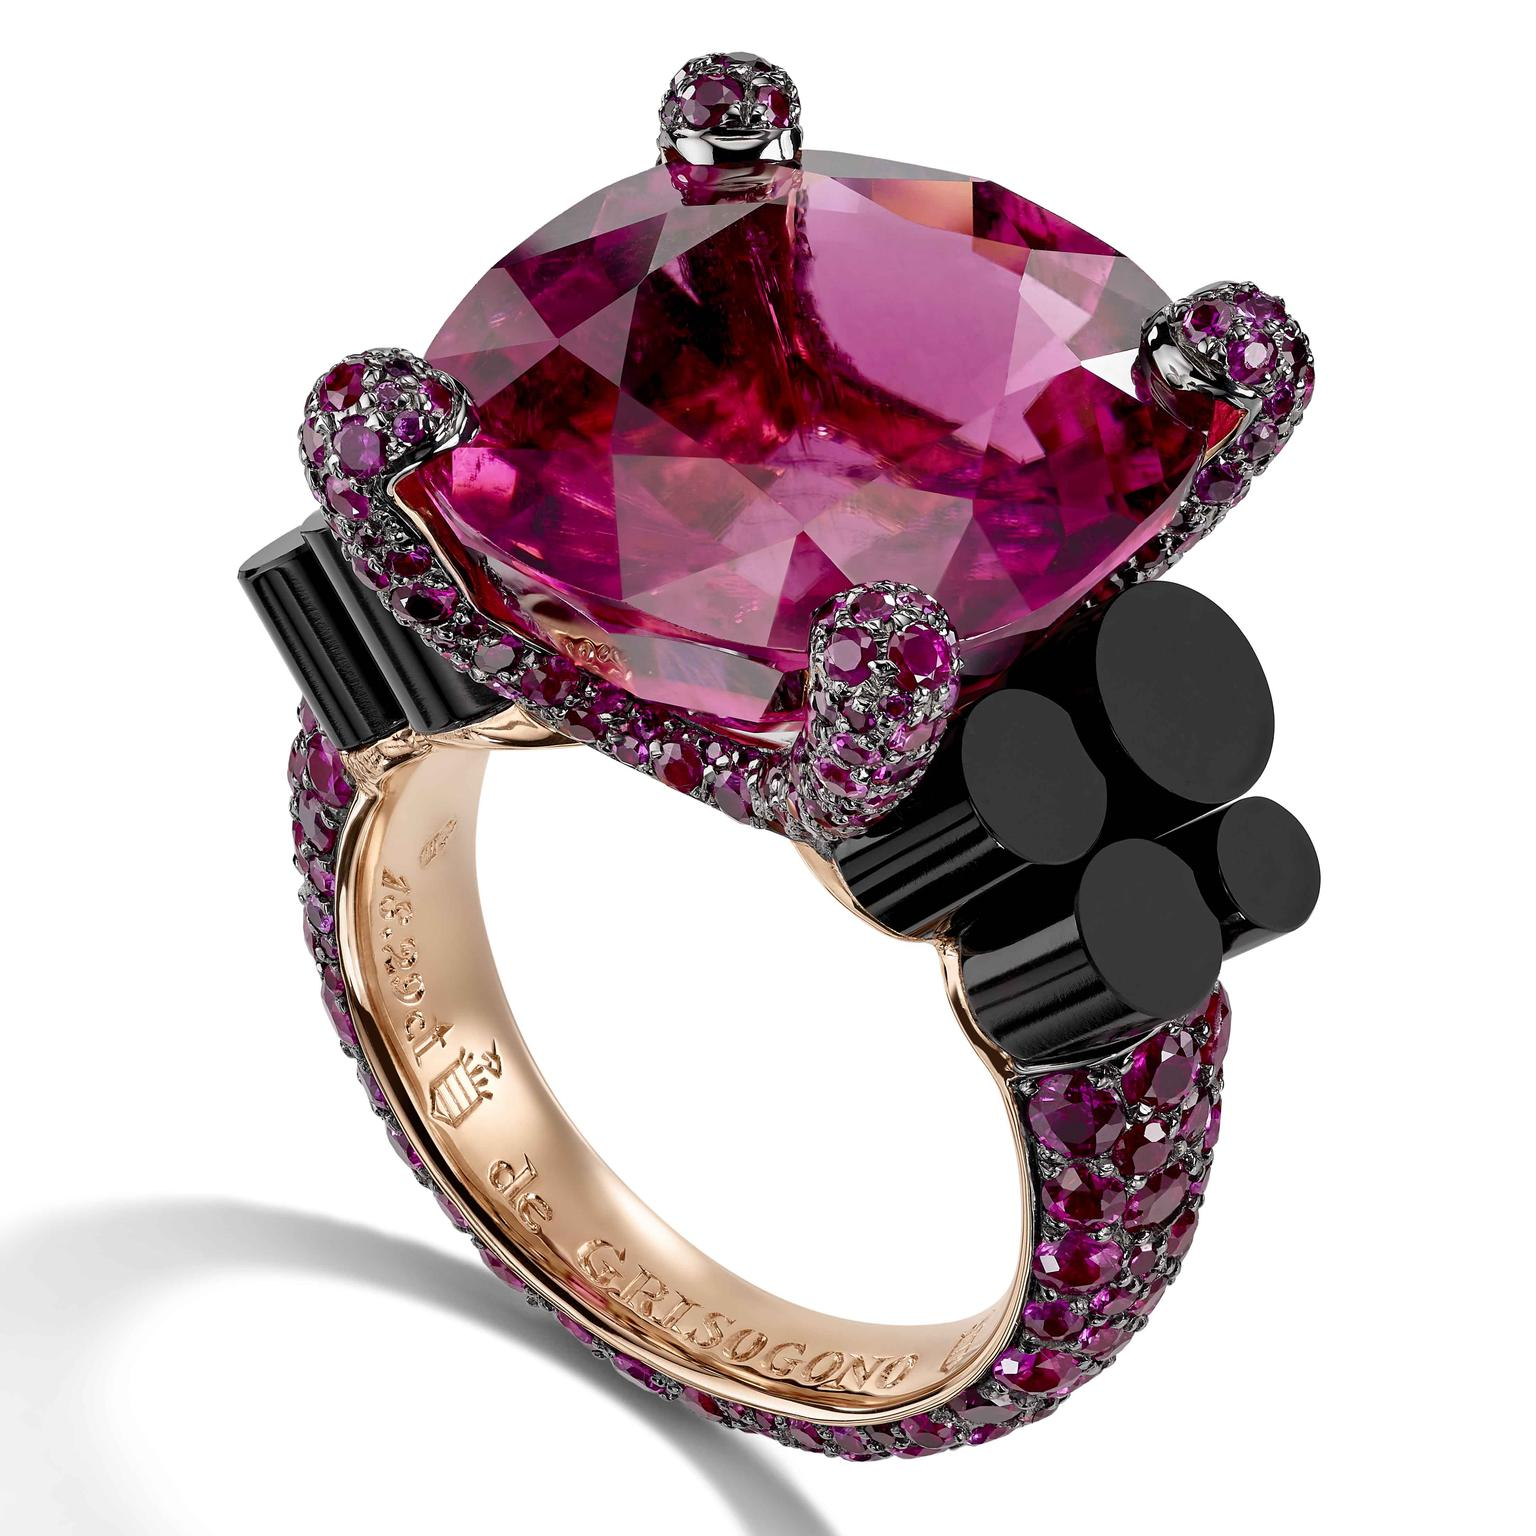 Rubellite ring from de GRISOGONO